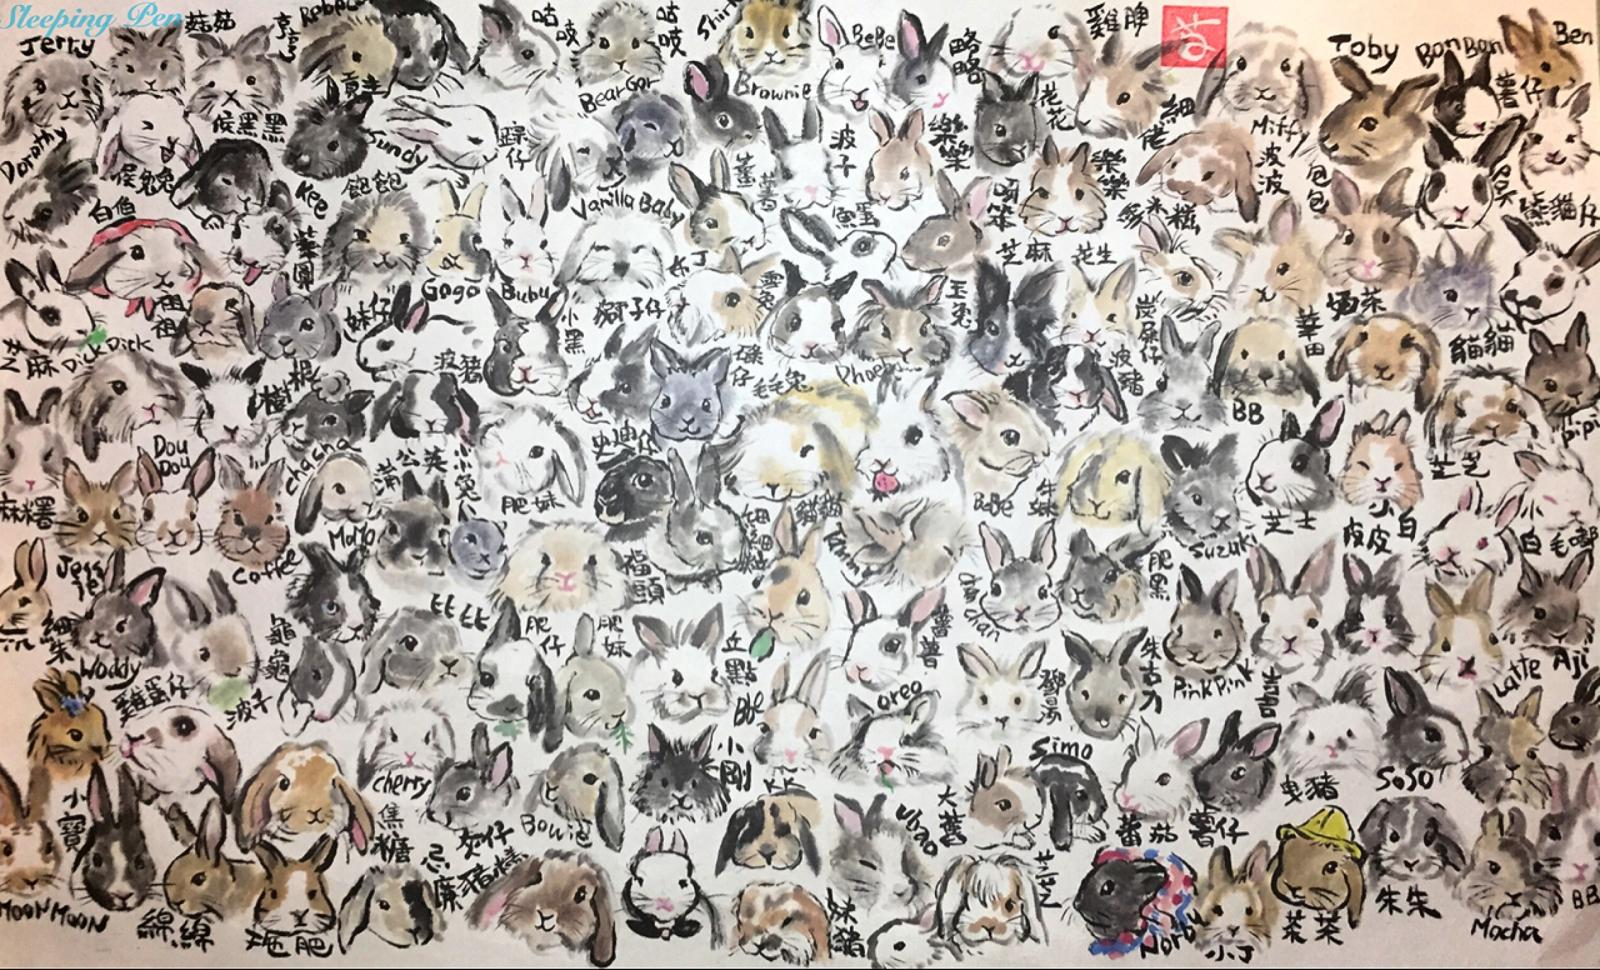 Hundreds of Rabbits